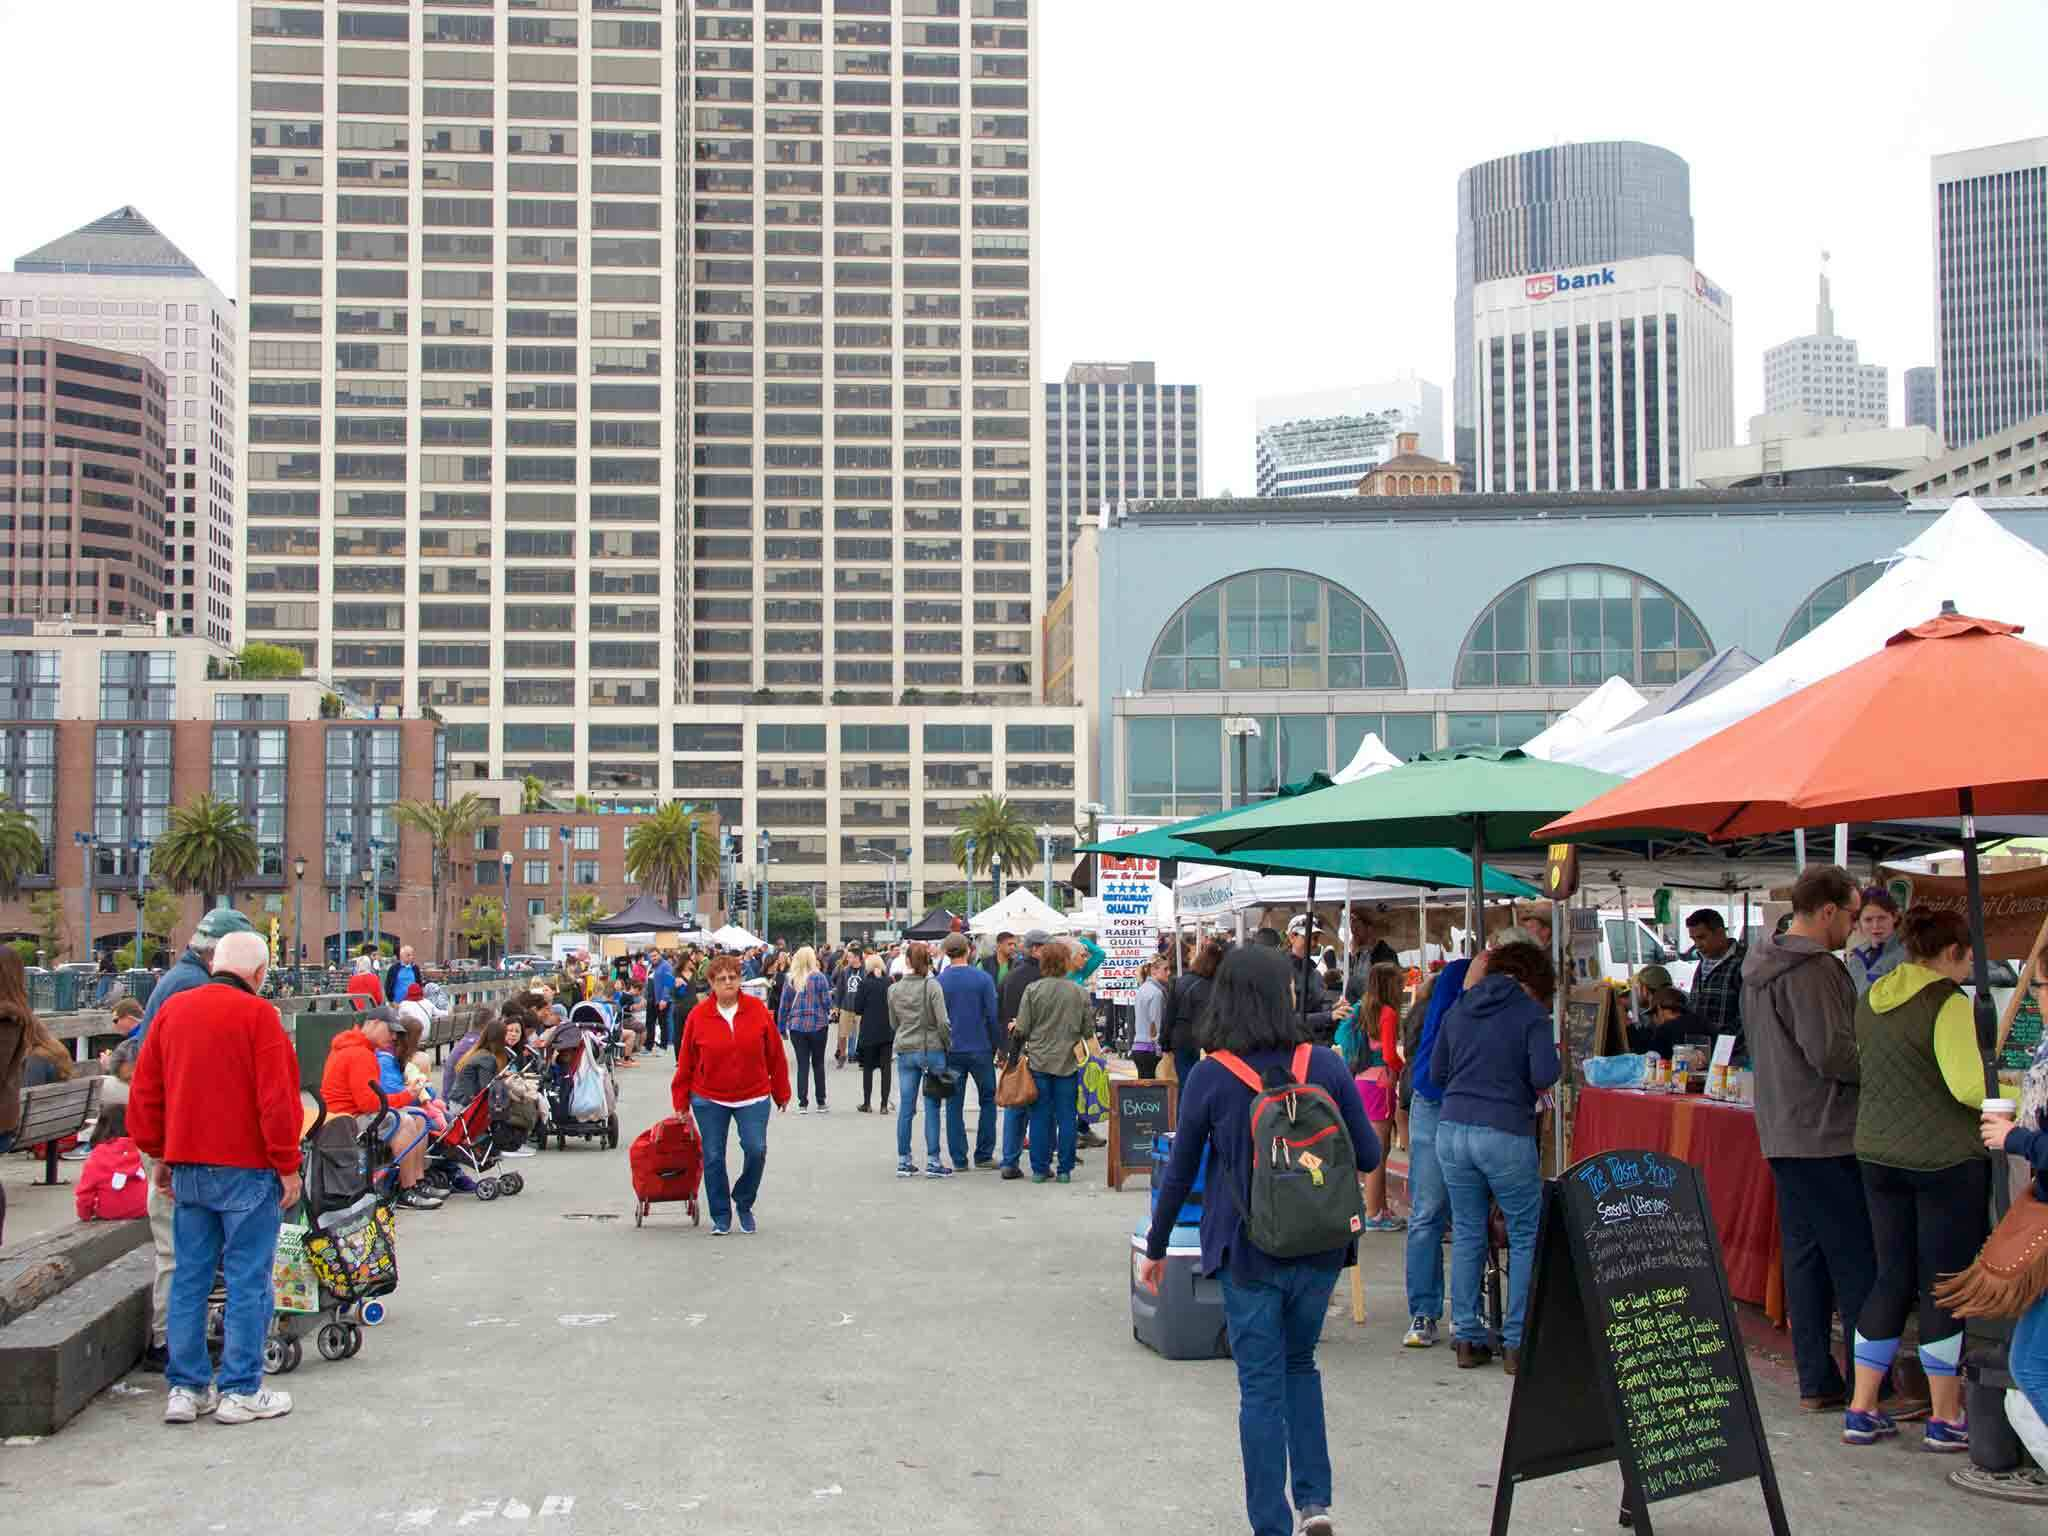 Ferry Plaza Farmers' Market